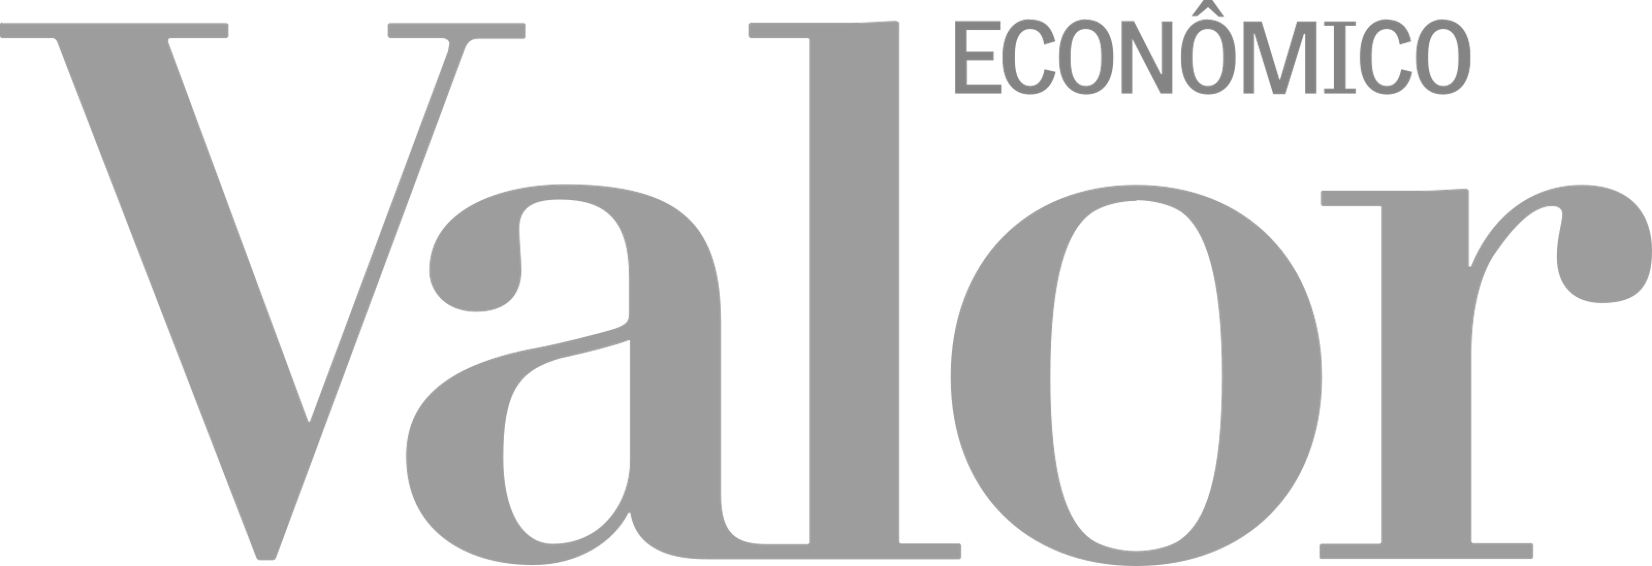 logotipo do jornal valor economico